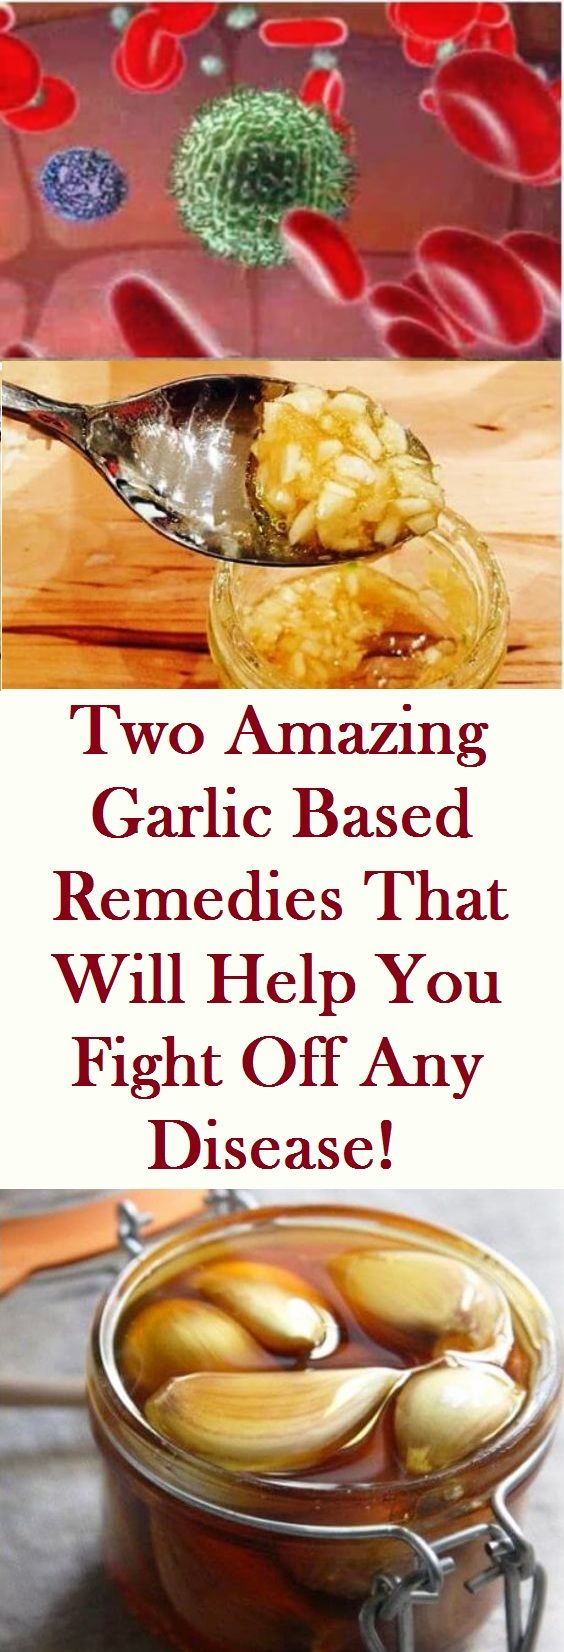 Two Amazing Garlic Based Remedies That Will Help You Fight Off Any Disease!